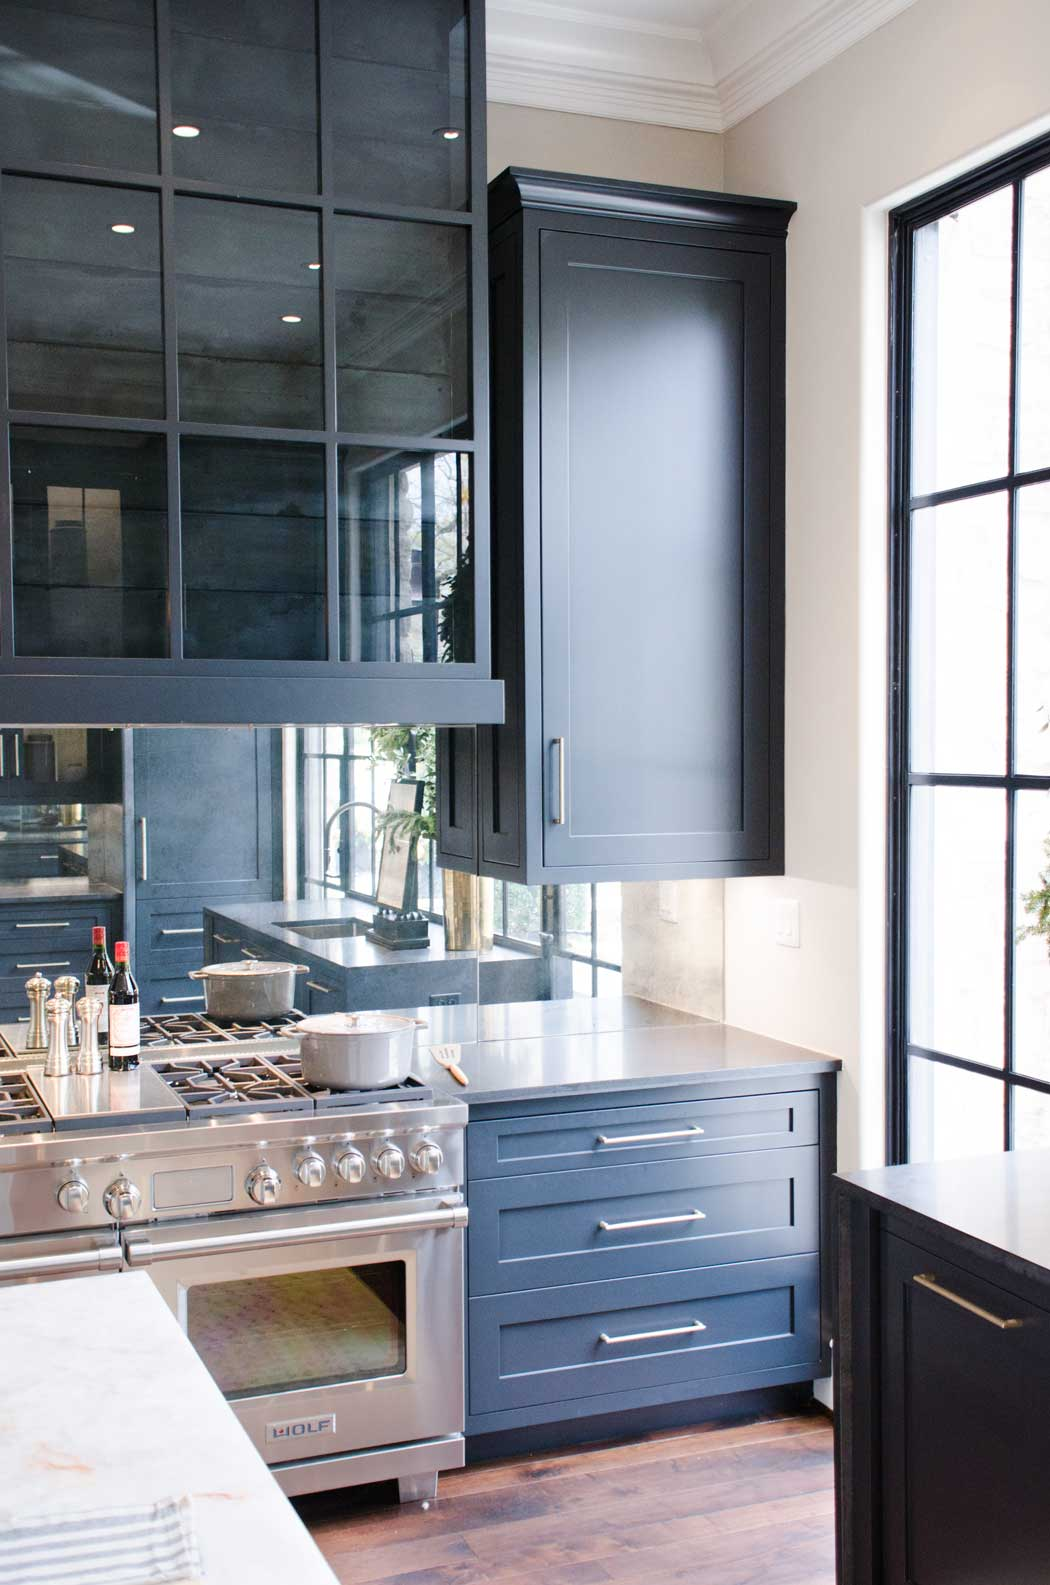 Blue slate kitchen cabinets with mirrored backsplash